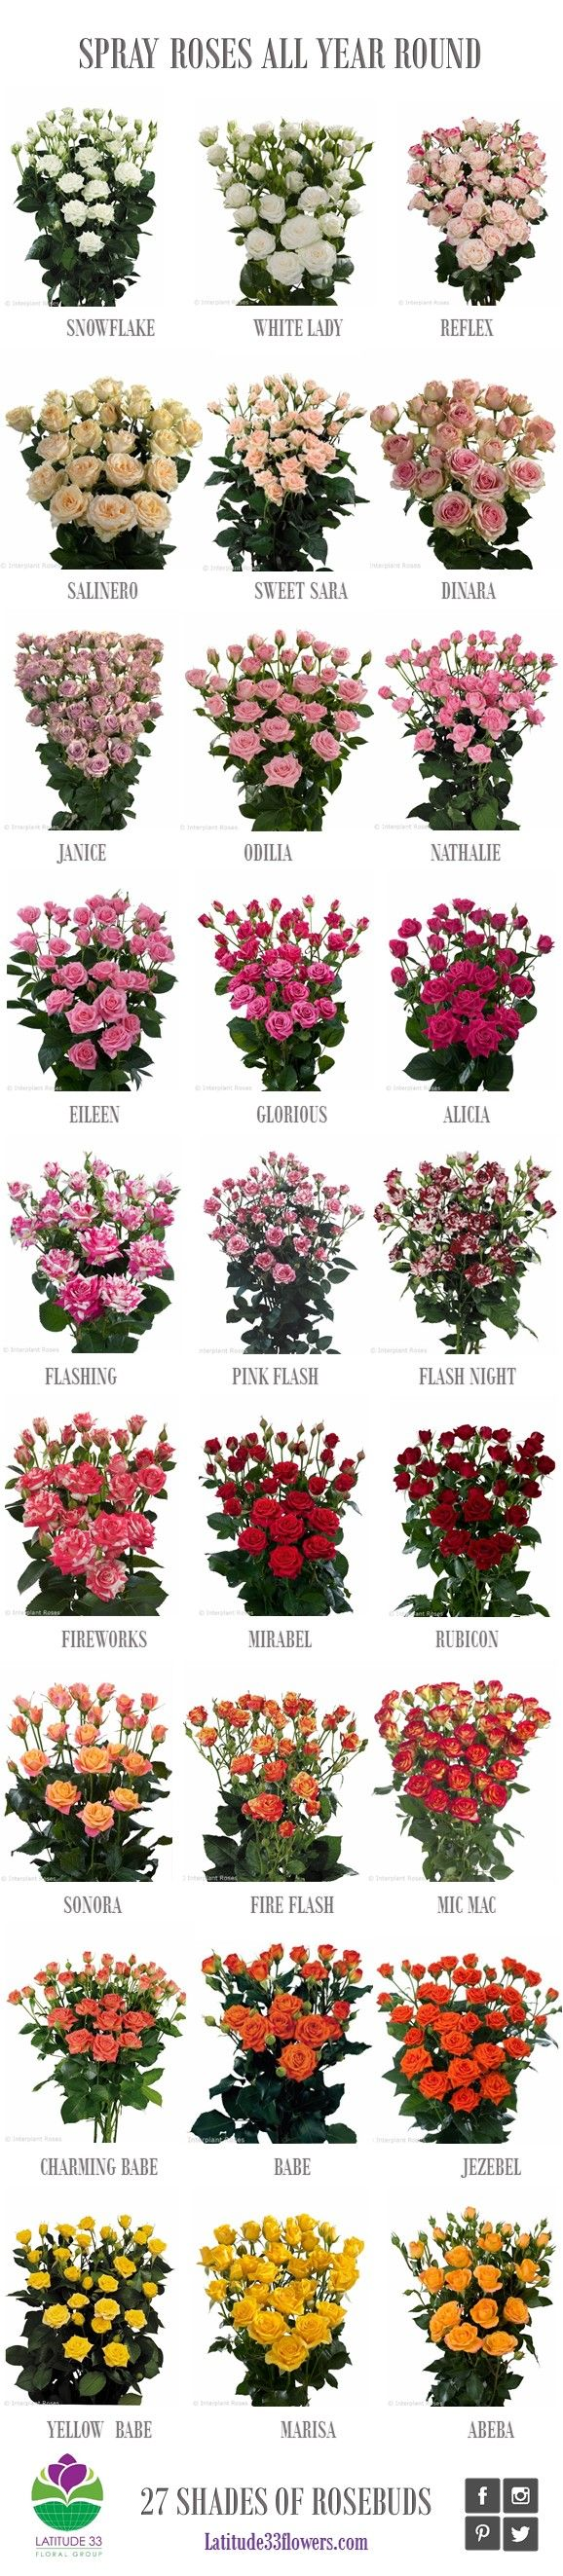 163 Beautiful Types Of Flowers A To Z With Pictures Kwiaty